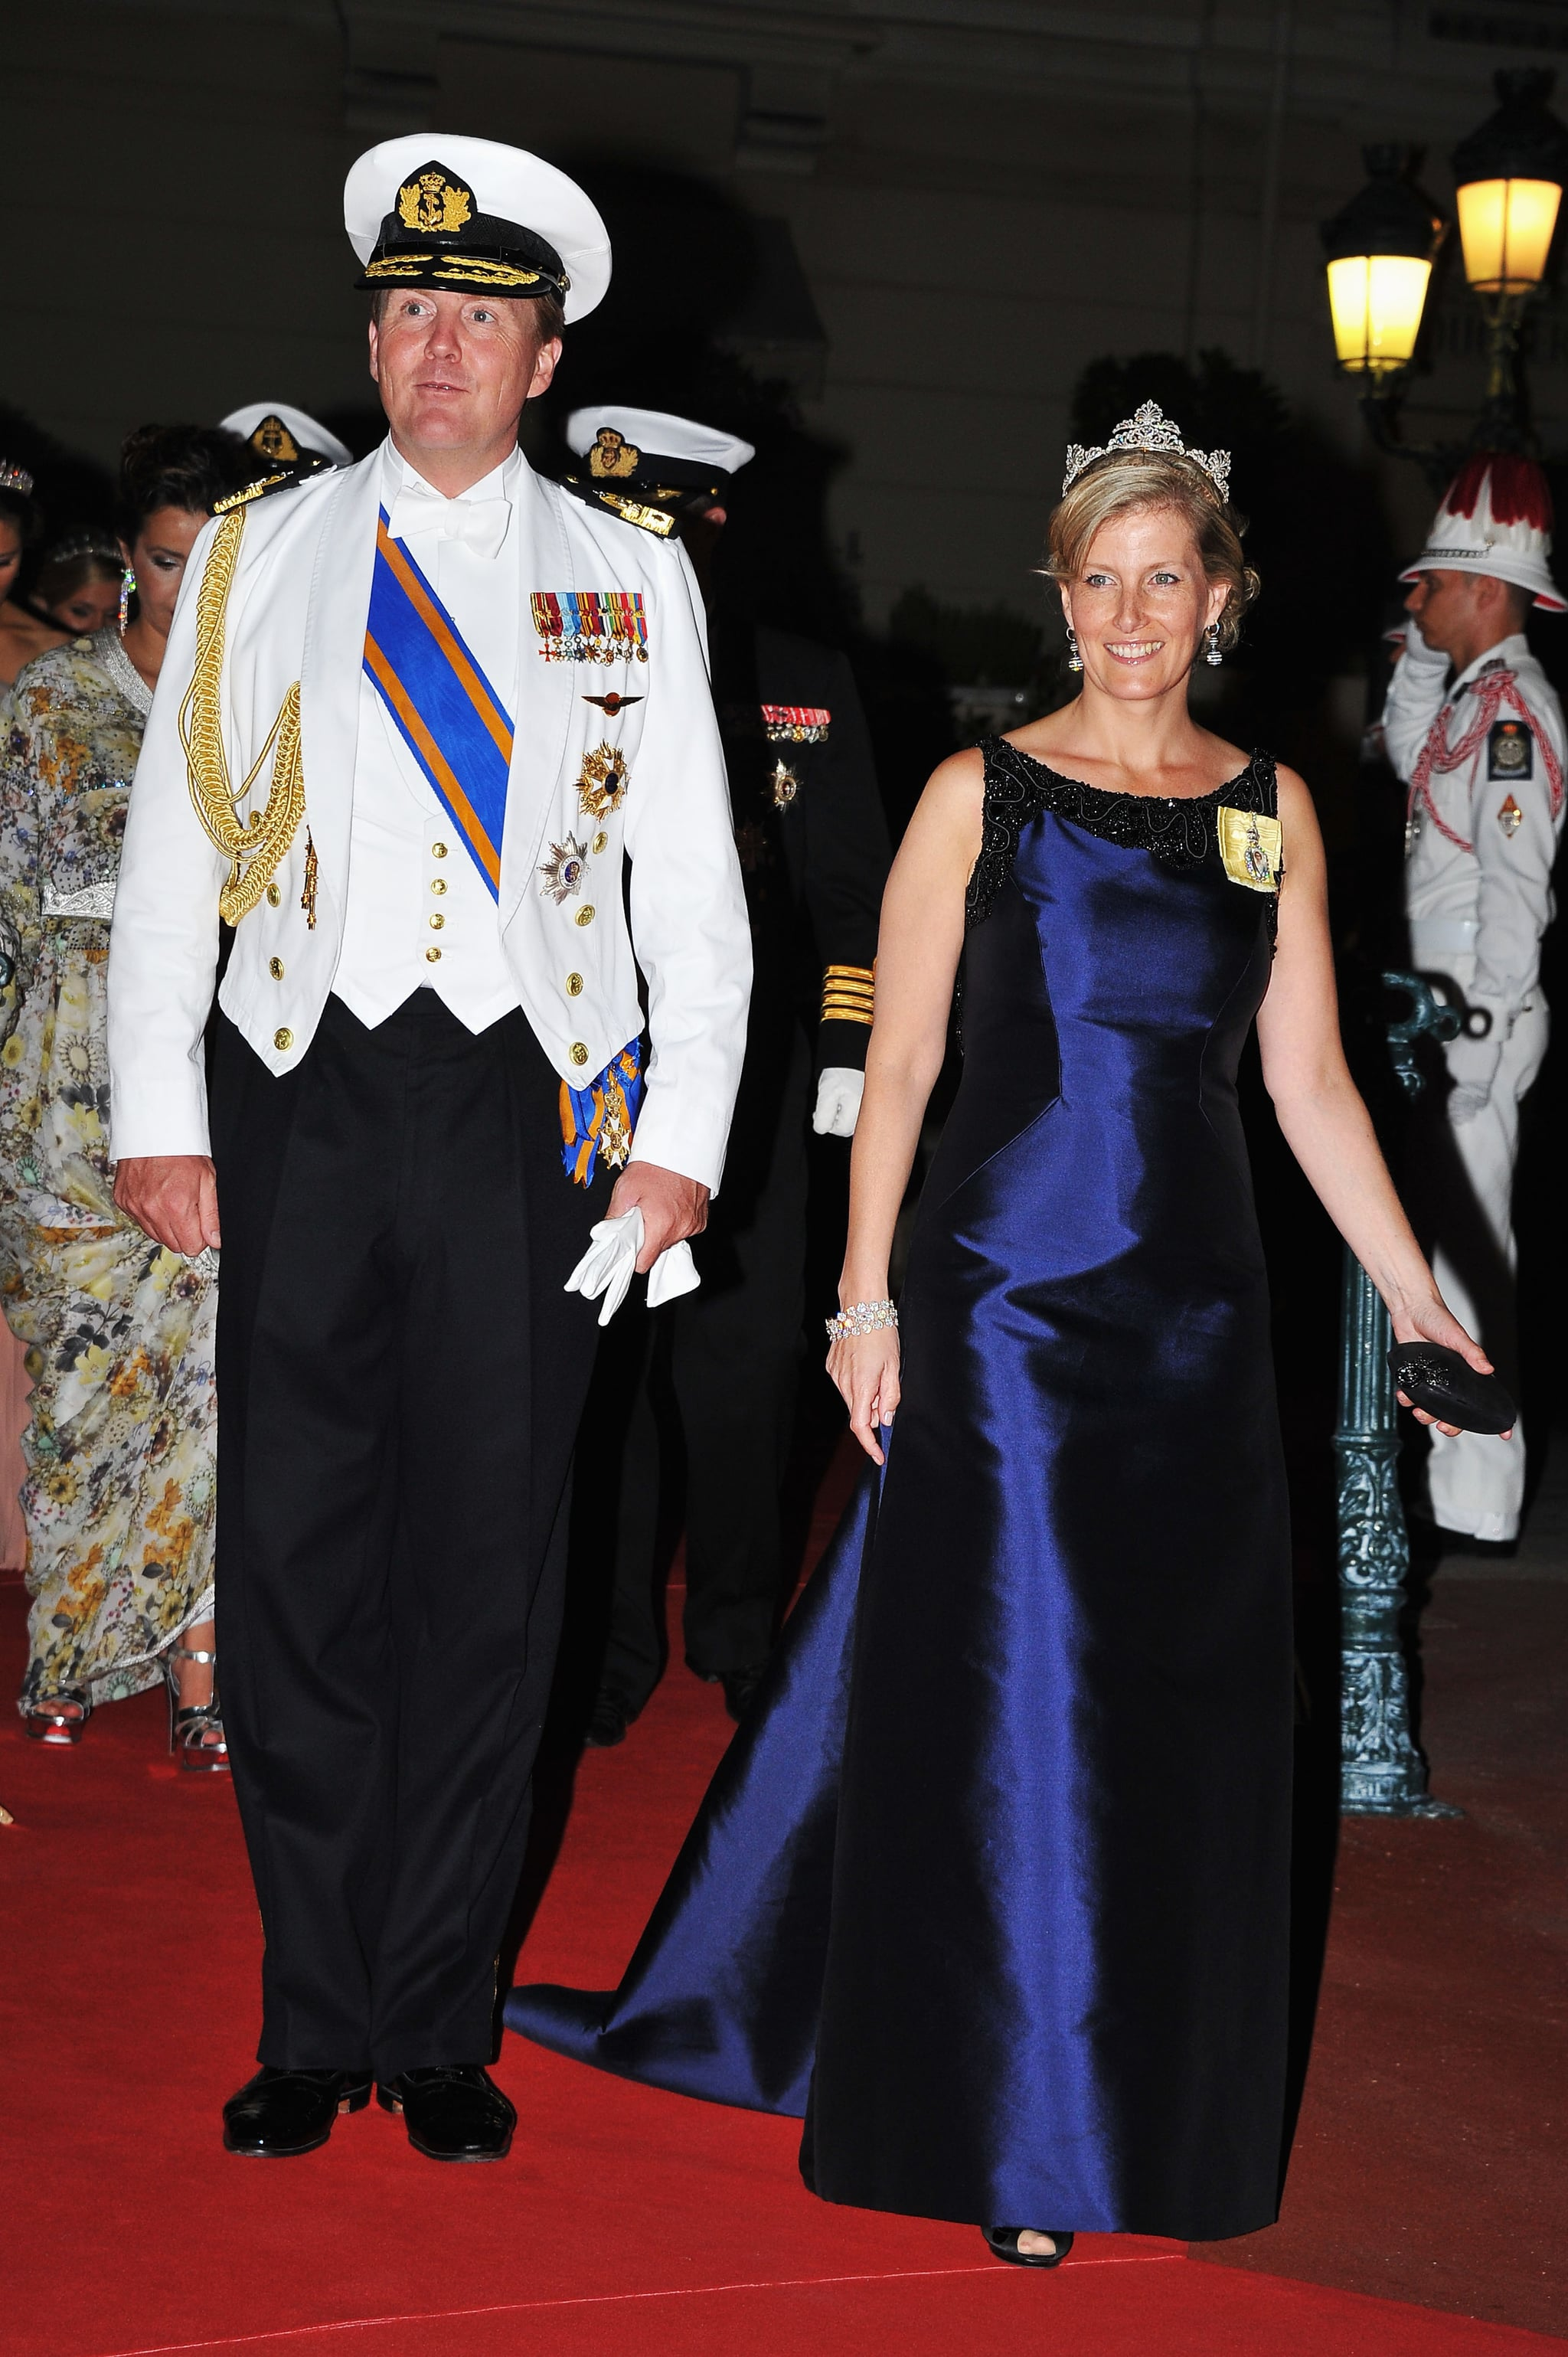 Crown Prince Willem-Alexander of Netherlands and Sophie, countess of Wessex, attended a dinner at Opera terraces after the religious wedding ceremony of Prince Albert II of Monaco and Princess Charlene of Monaco.